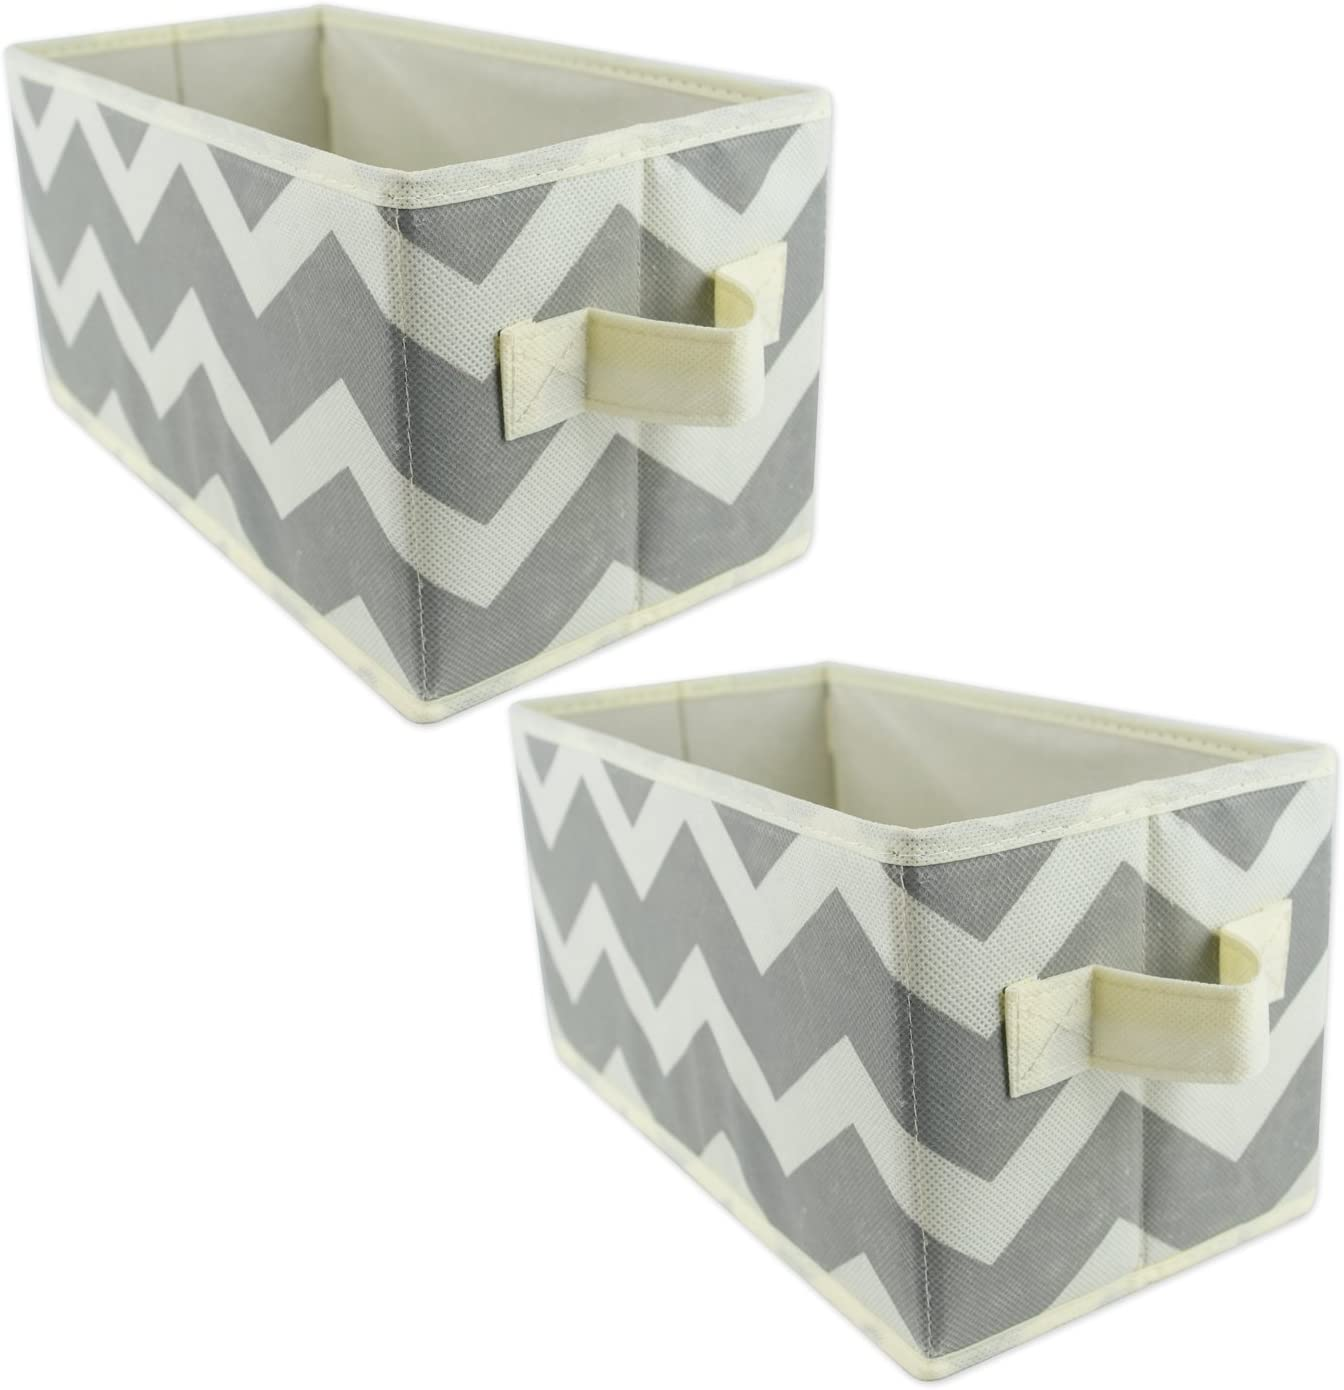 DII Fabric Storage Bins for Nursery, Offices, & Home Organization, Containers Are Made To Fit Standard Cube Organizers (11x5.5x5.5